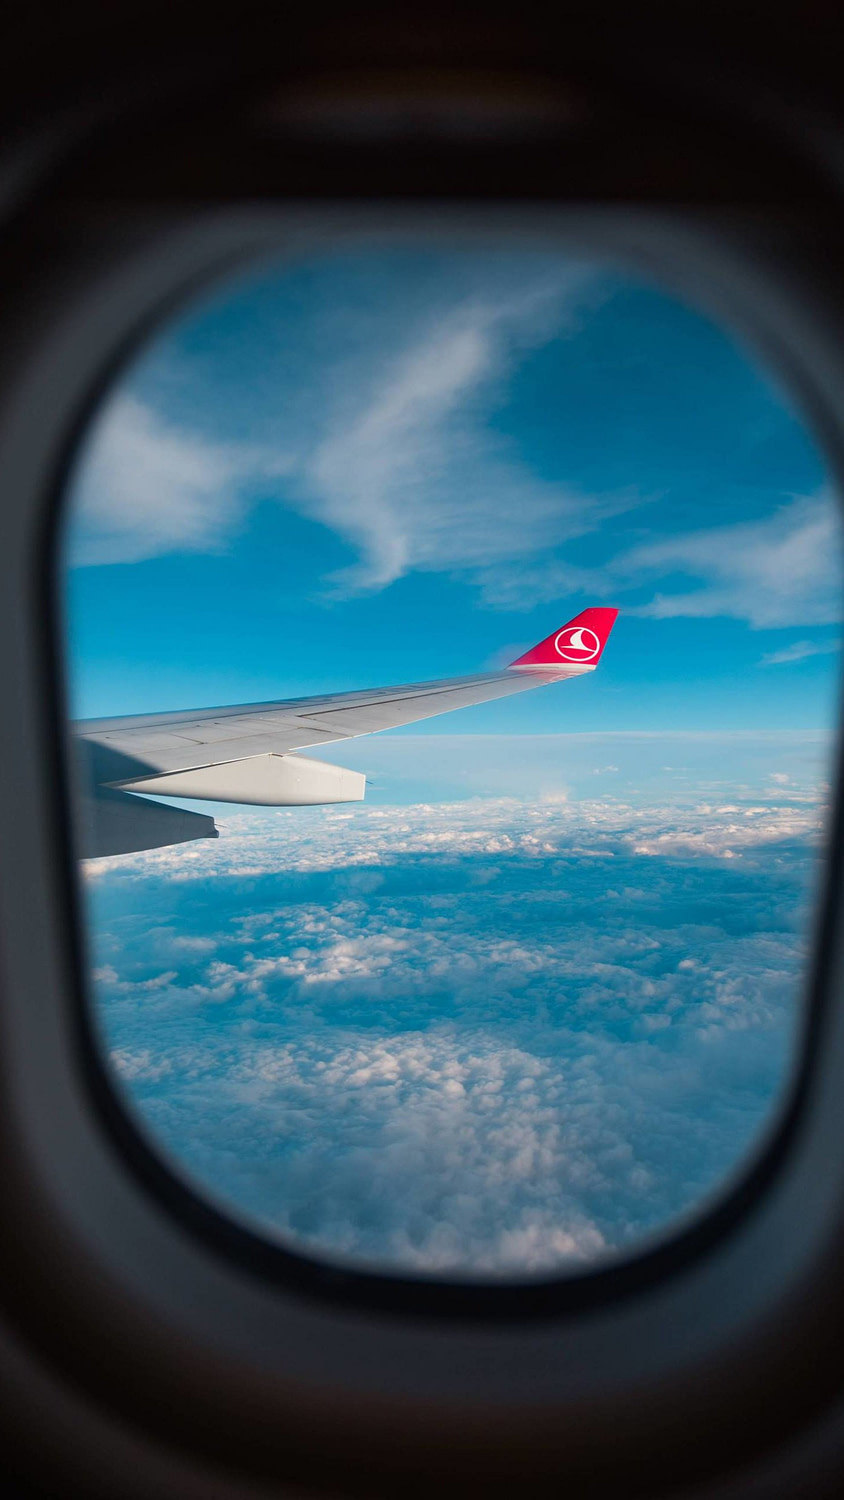 An awesome window shot of the winglet on a TK A340. This aircraft is the safest in the world with never having any safety incidents.